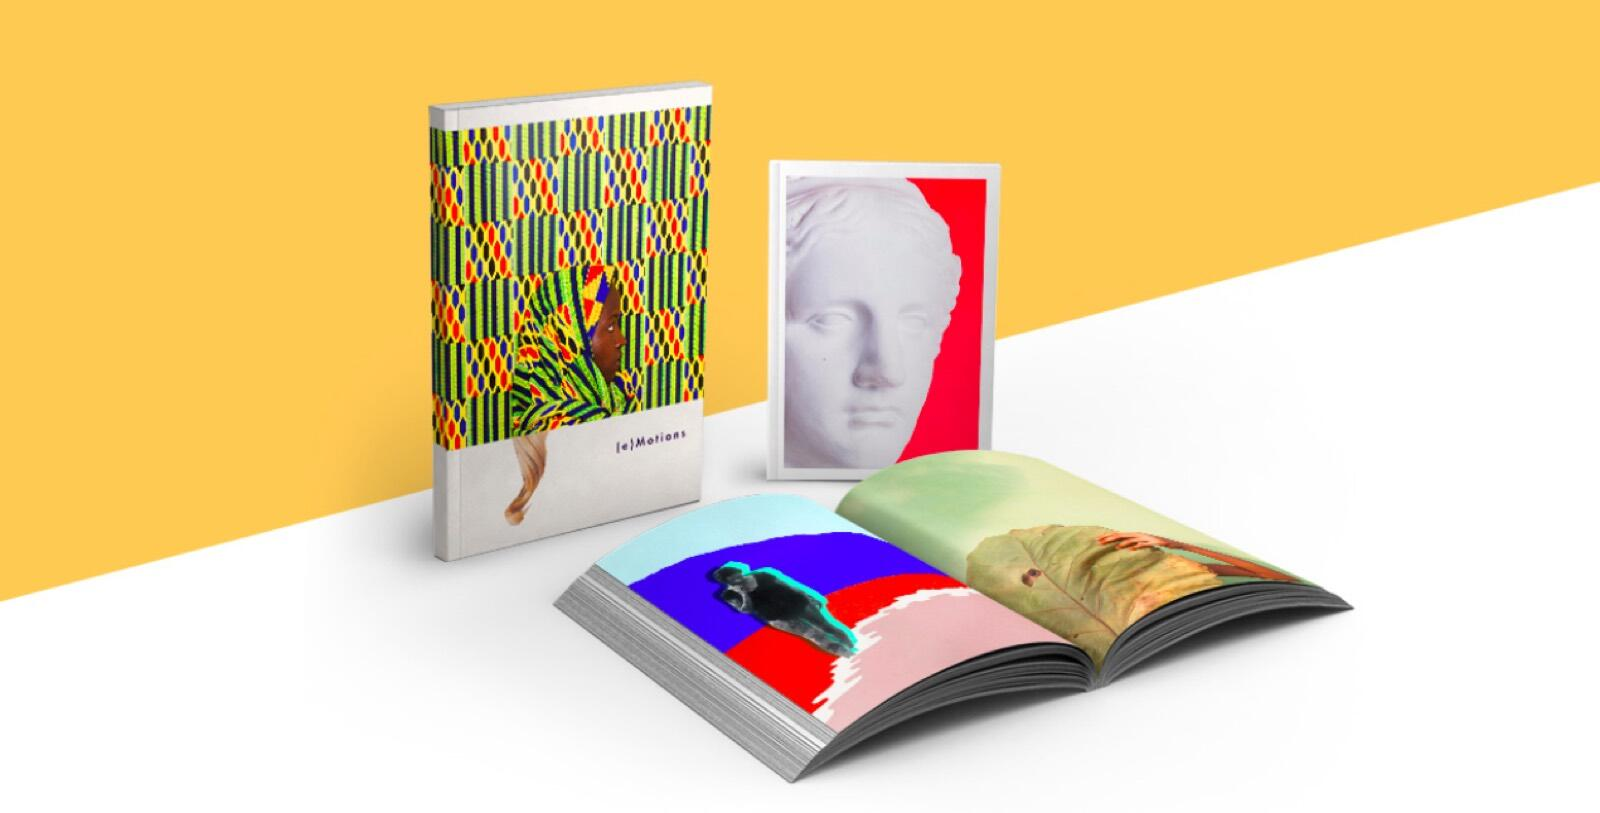 Best Photo Books For 2021 Cnet